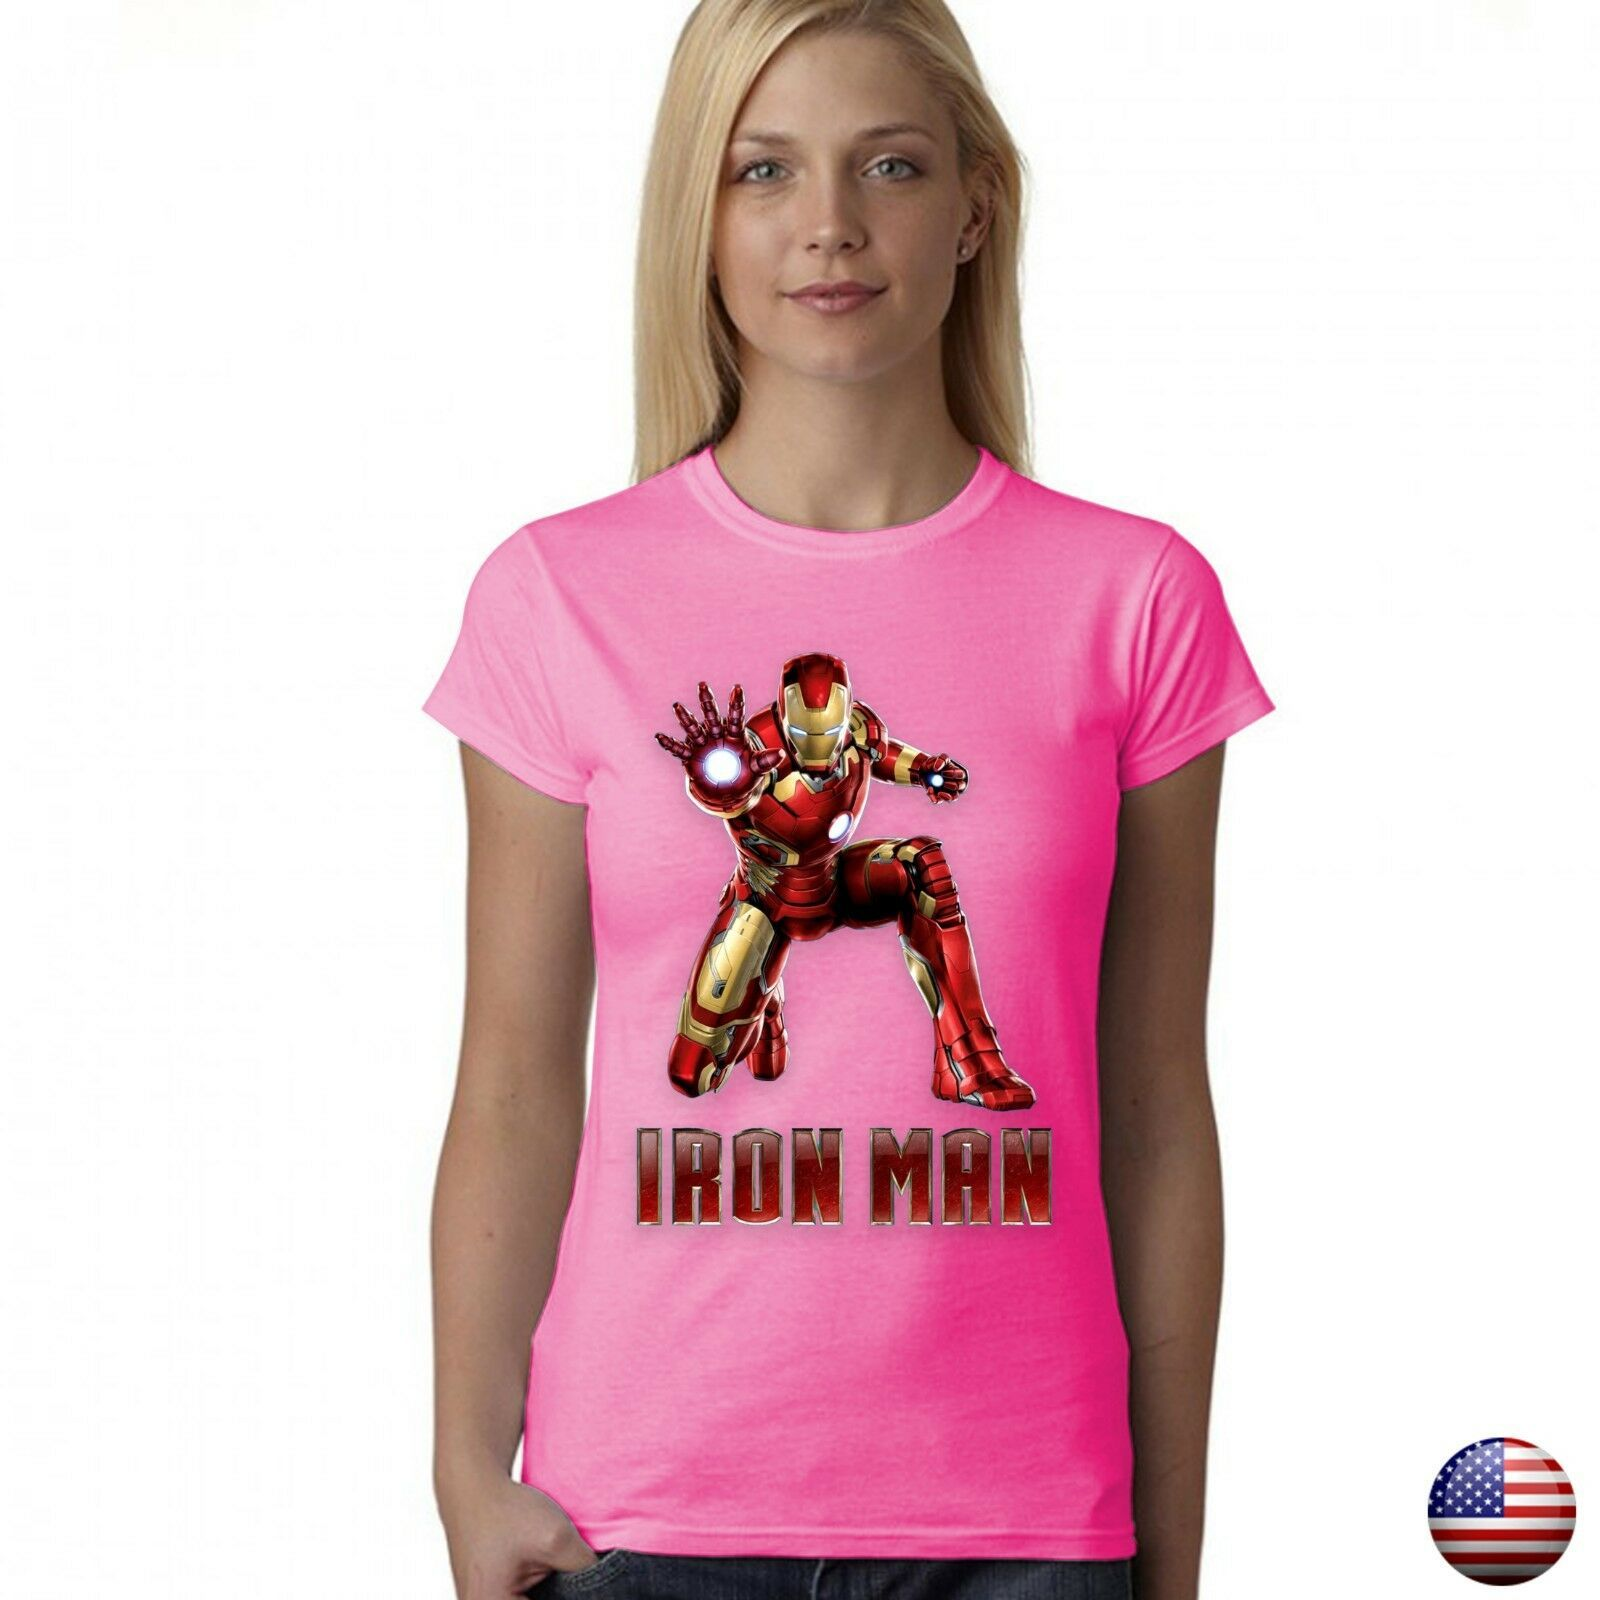 IRON MAN LEAGUE SUPERHERO LOGO WOMEN JUNIOR FIT PINK T-SHIRT 192